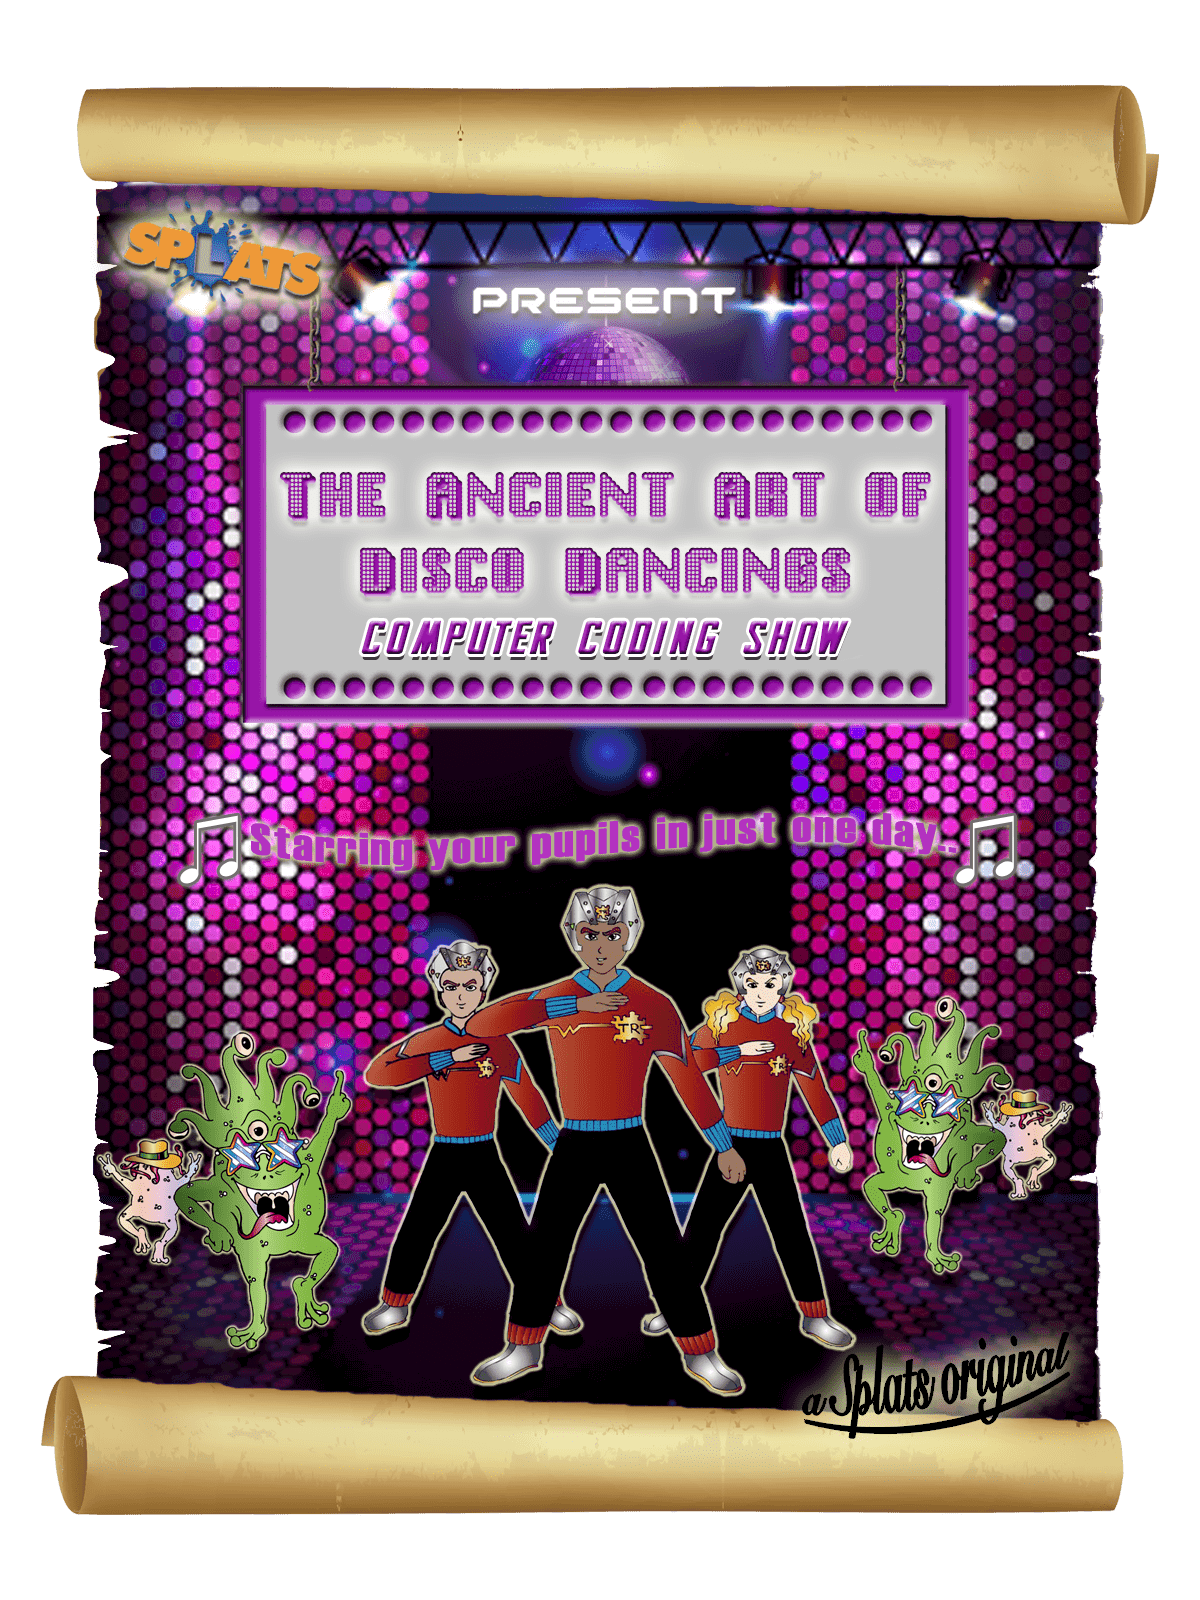 Splats Team Robot and The Ancient Art of Disco Dancing Poster 2